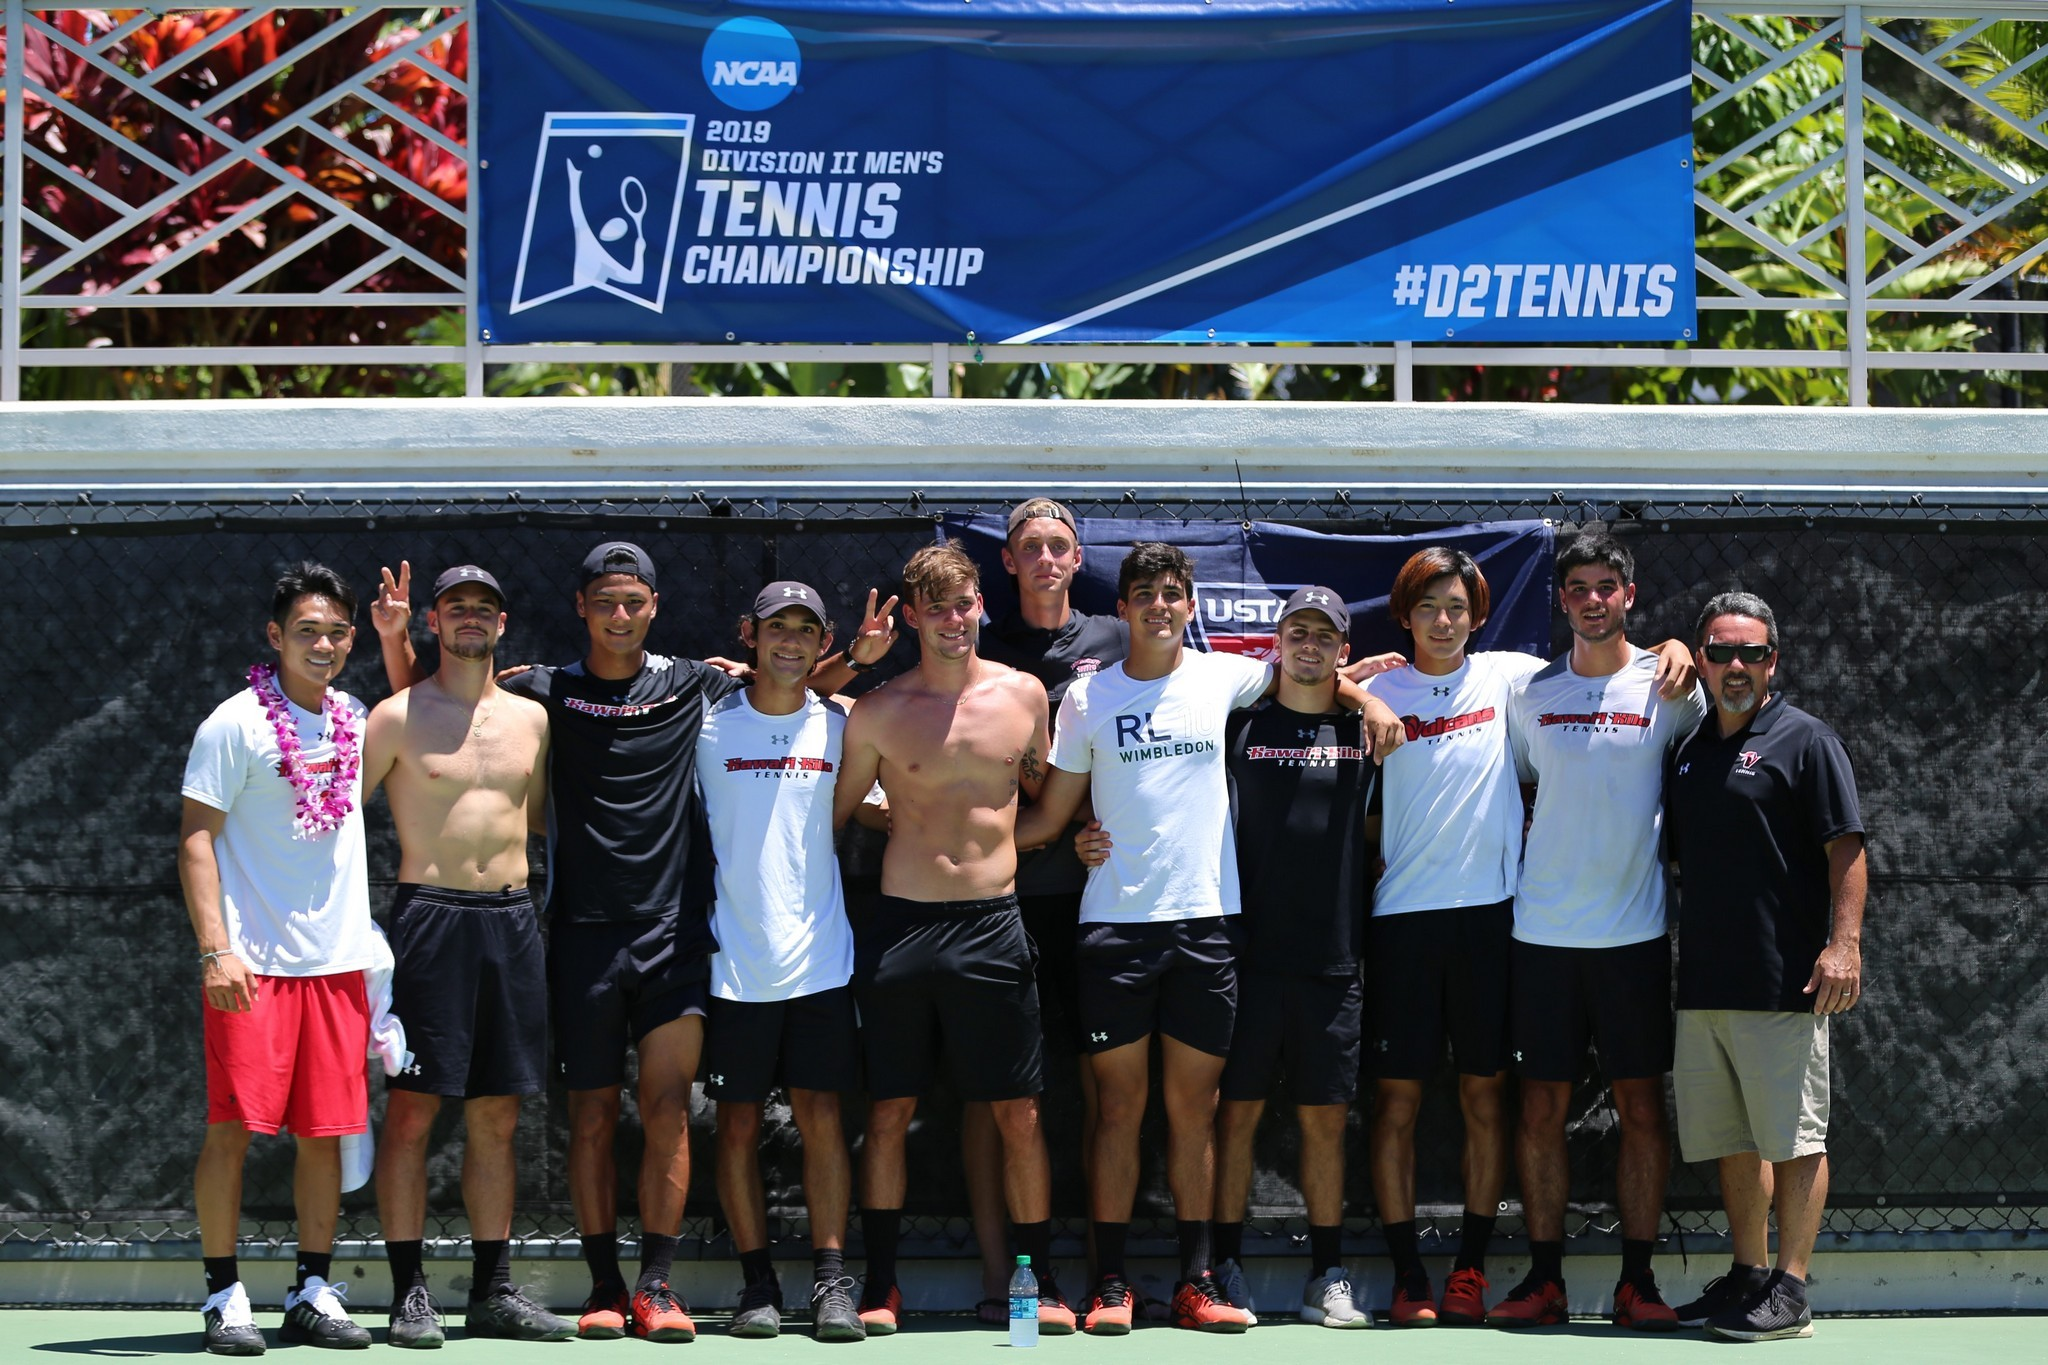 Team and coaches, 11 total, stand in front of banner that reads: NCAA 2019 Division II Men's Tennis Championship. #D2Tennis